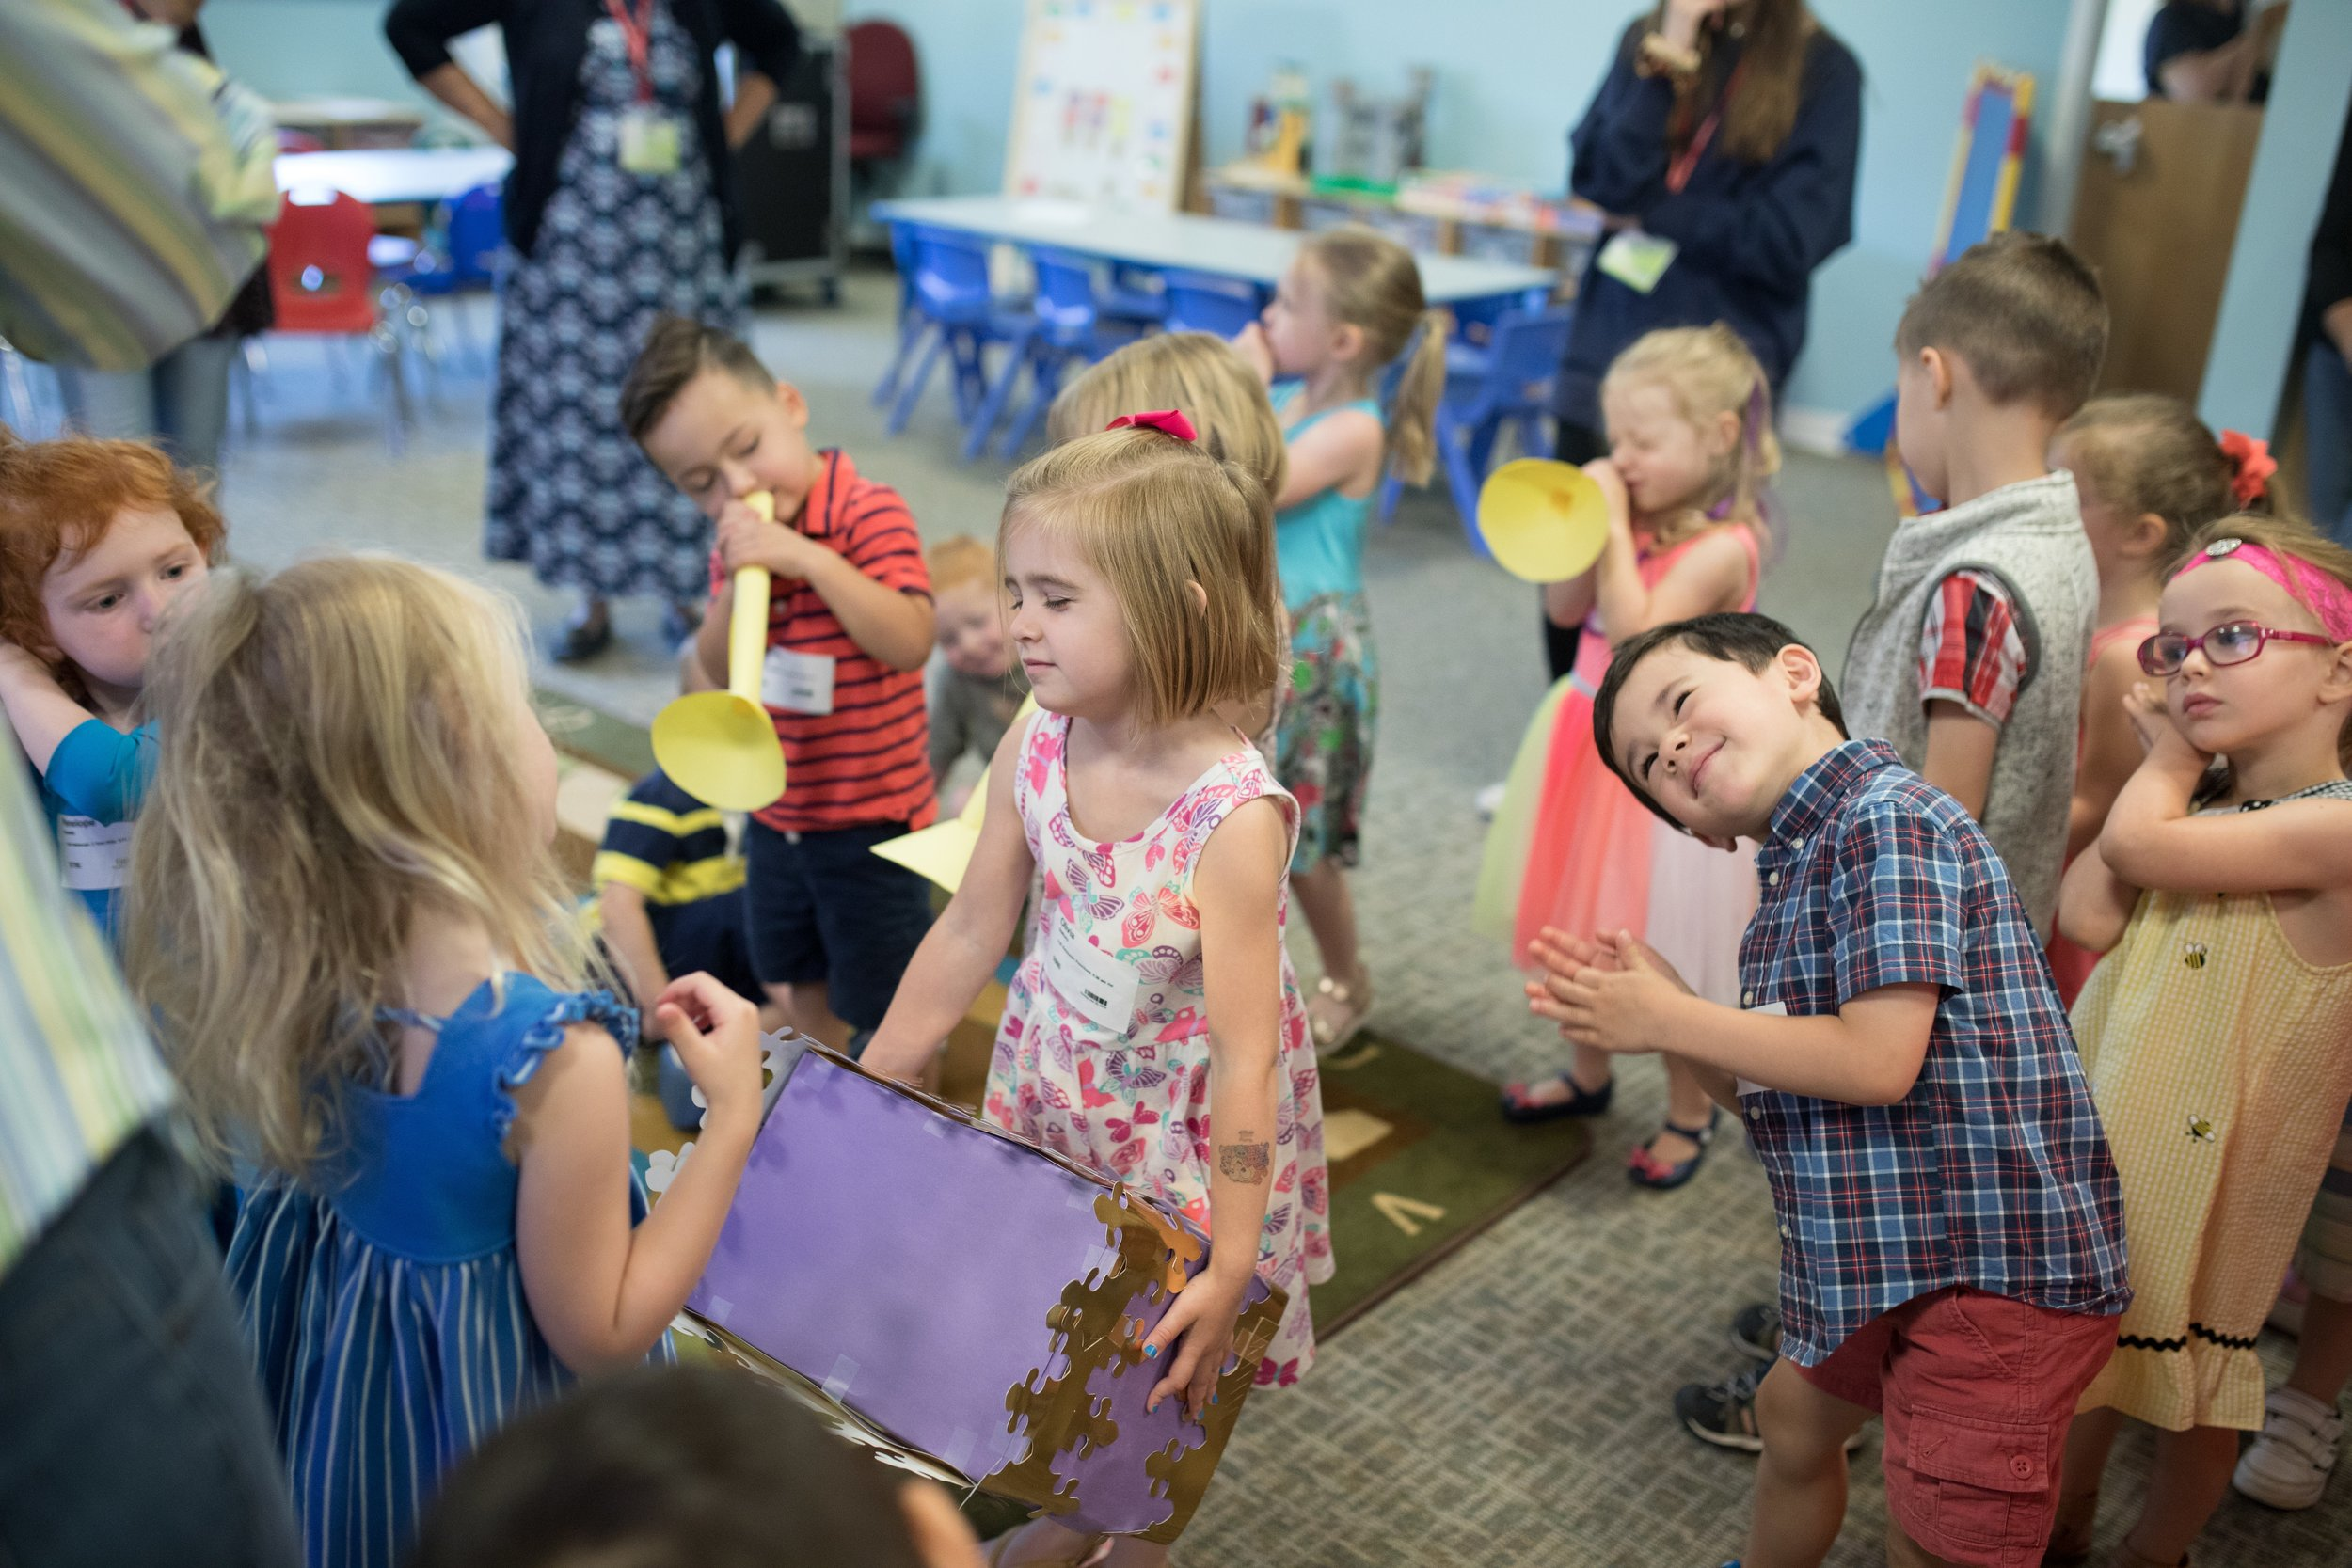 Preschool - Your inquisitive preschooler will begin to learn the basics of the Gospel: God made the world, there is brokenness in our heart, and Jesus is the only Savior.We use a mixture of focused play, activities, teaching, song, and dance.